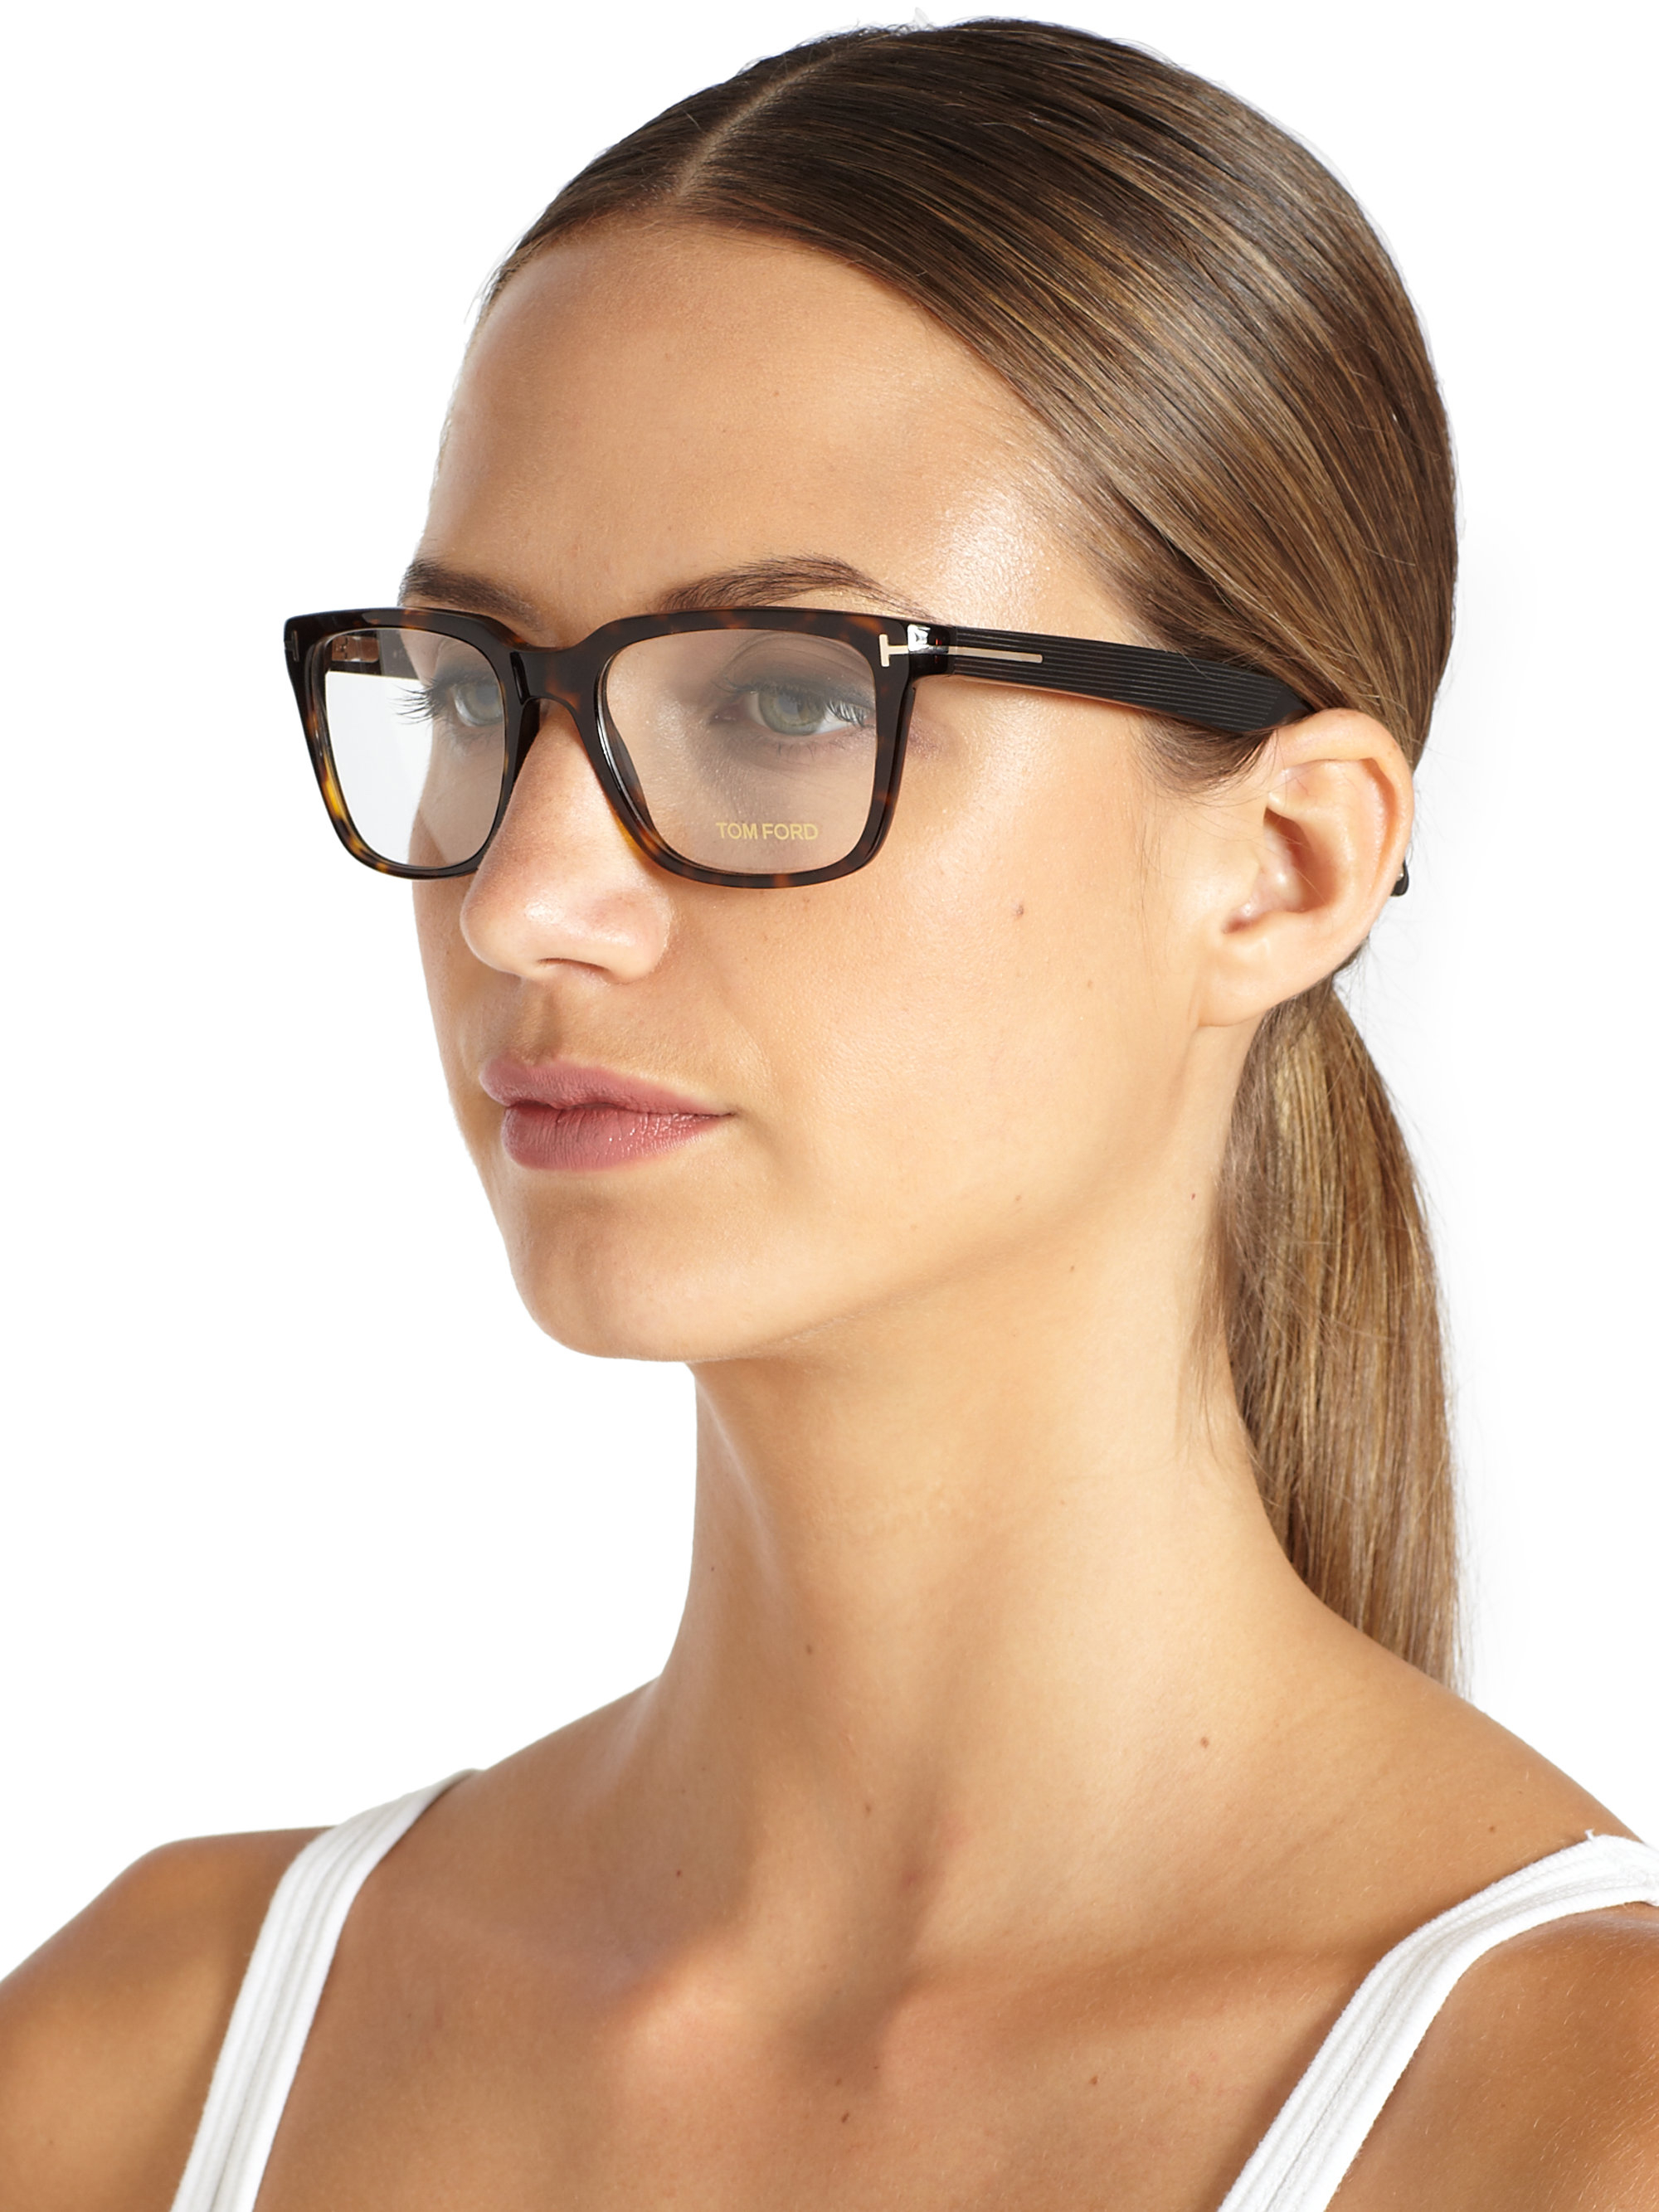 51afb3a134 Lyst - Tom Ford Square Optical Glasses in Brown for Men